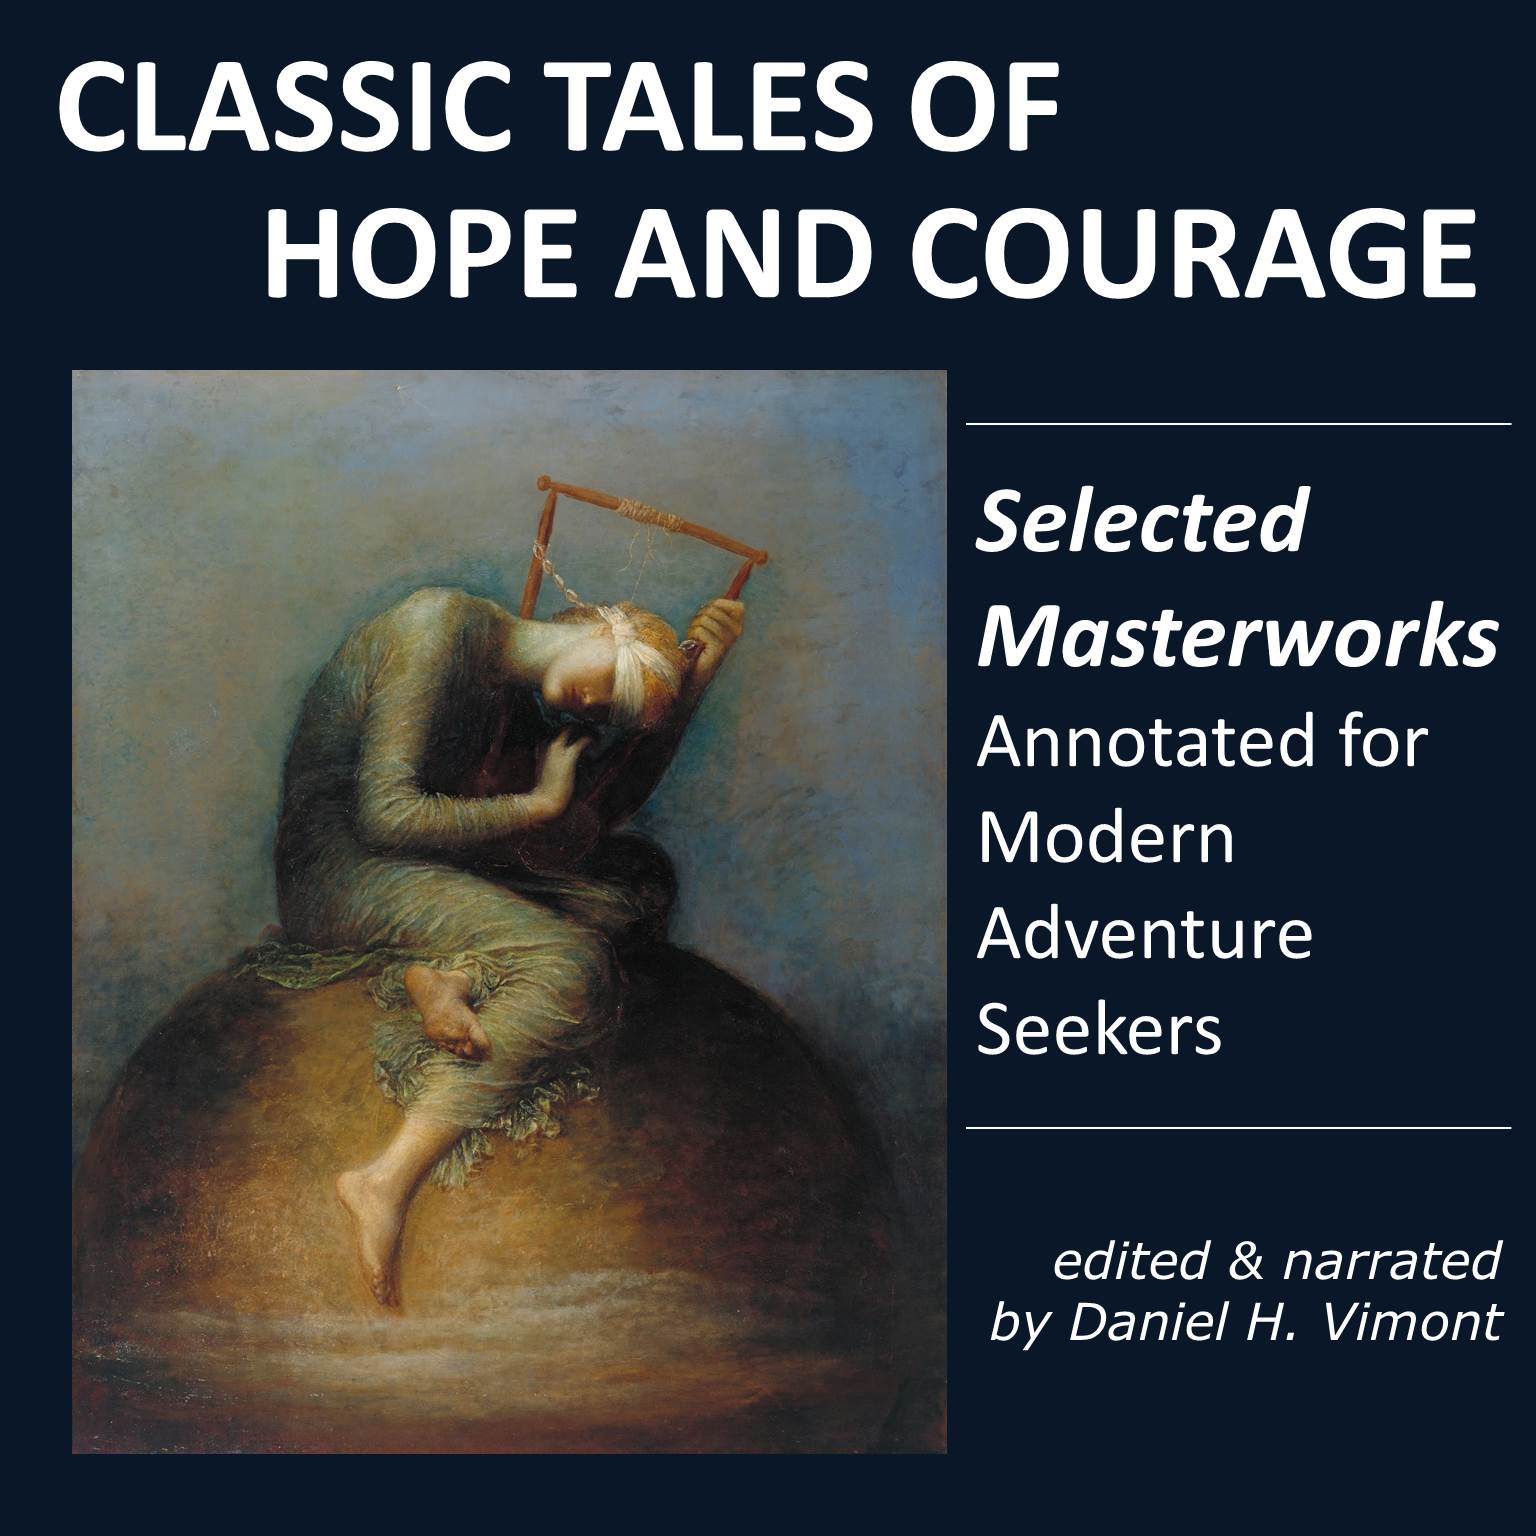 audiobook_cover_classic_tales_of_hope_and_courage.jpg